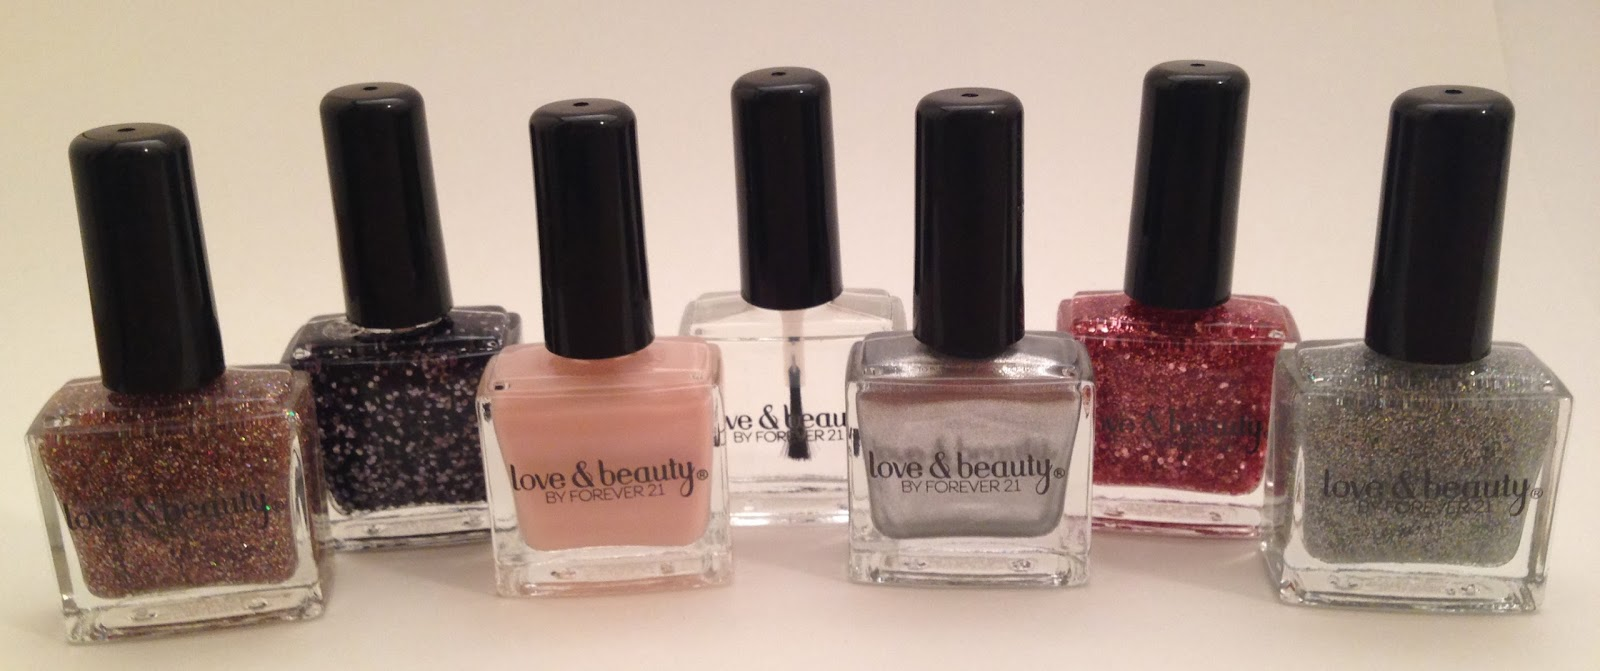 Playful Polishes: ARE FOREVER 21 POLISHES ANY GOOD??